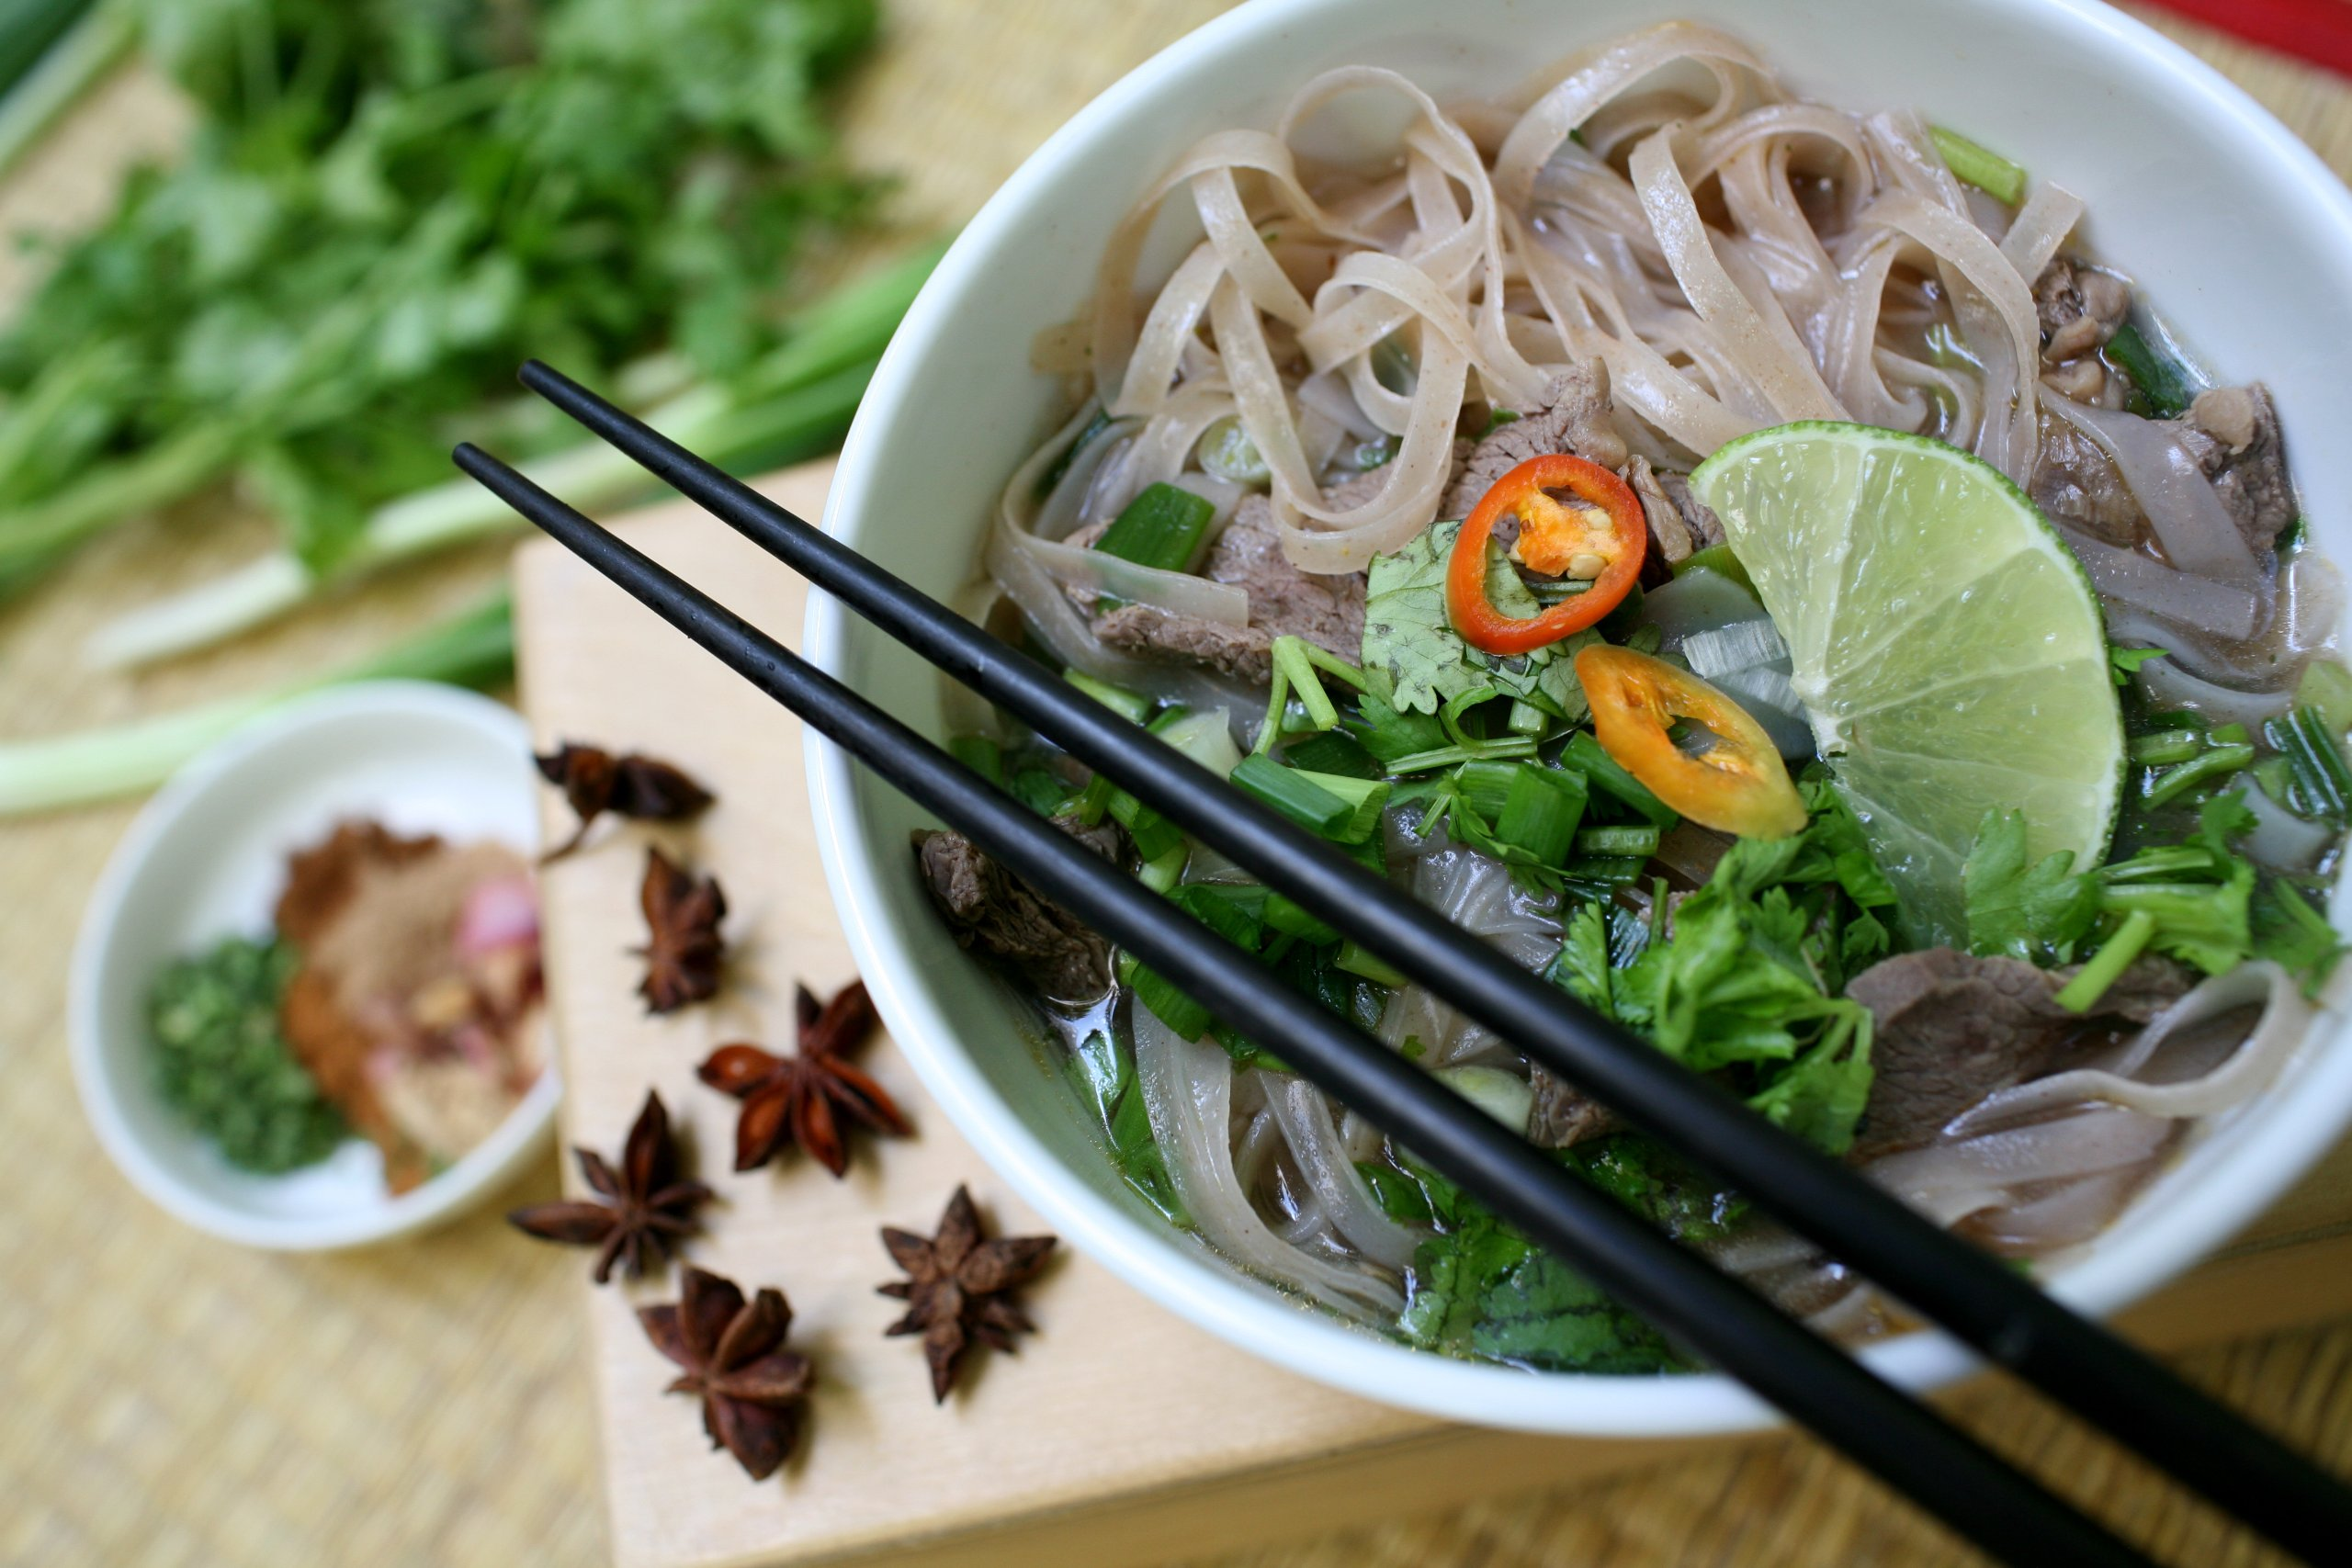 Star Anise Foods - NON GMO Gluten Free Vietnamese HAPPY PHO Garlic Goodness - 4.5 oz / 2 Servings per box, Pack of 6 boxes by Star Anise Foods